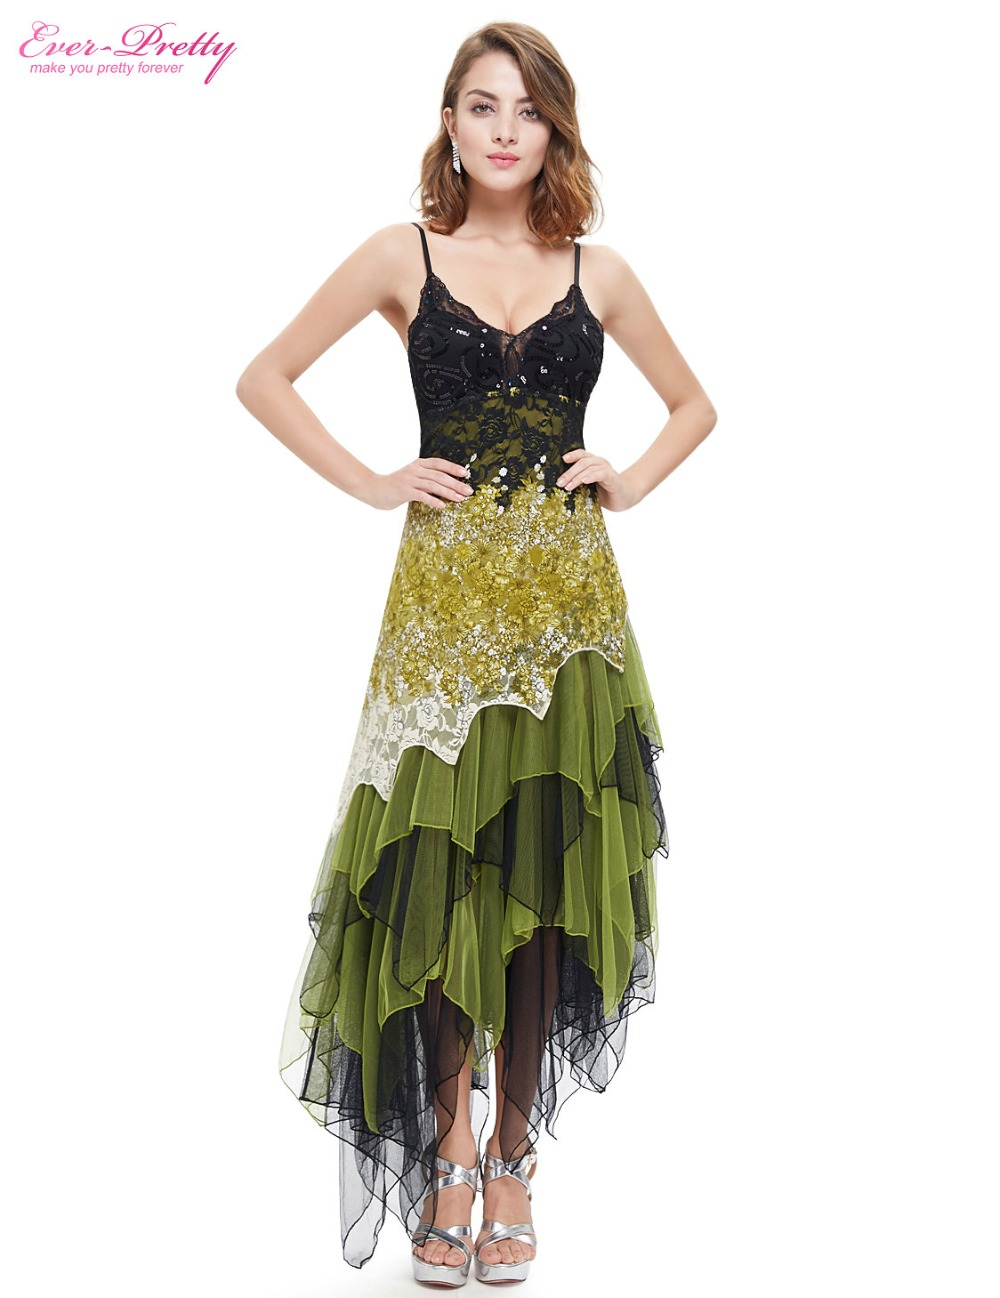 Baby dresses for girls baby dress - Dresses For Parti Over Dresses Picture In Evening Dresses From